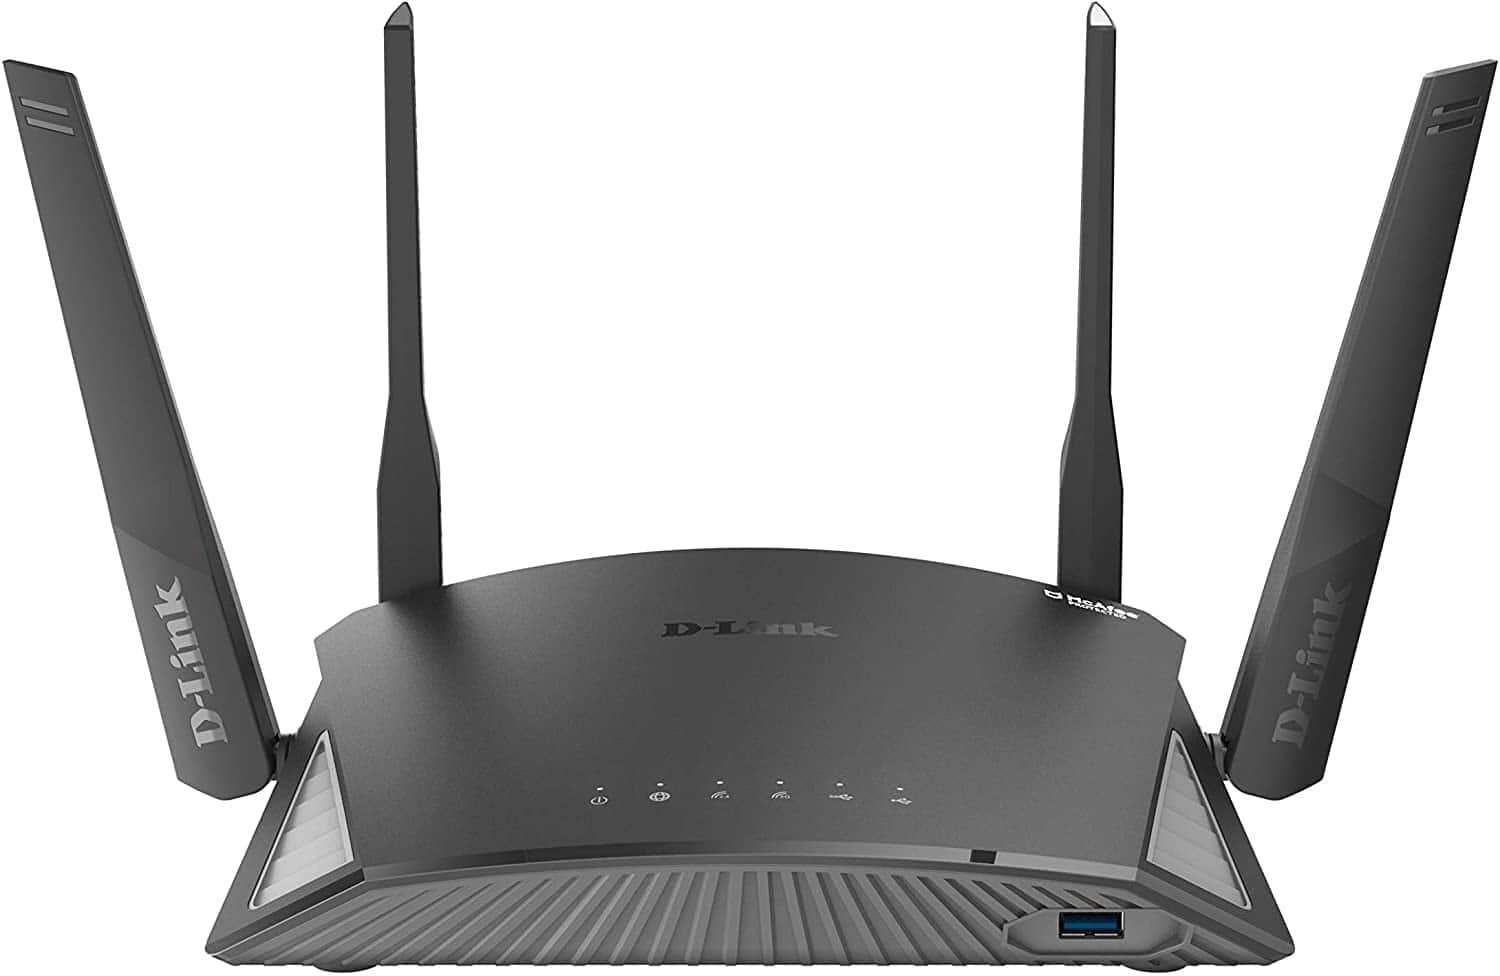 D-Link AC2600 Dual Band WiFi Router, Free Shipping $88.99